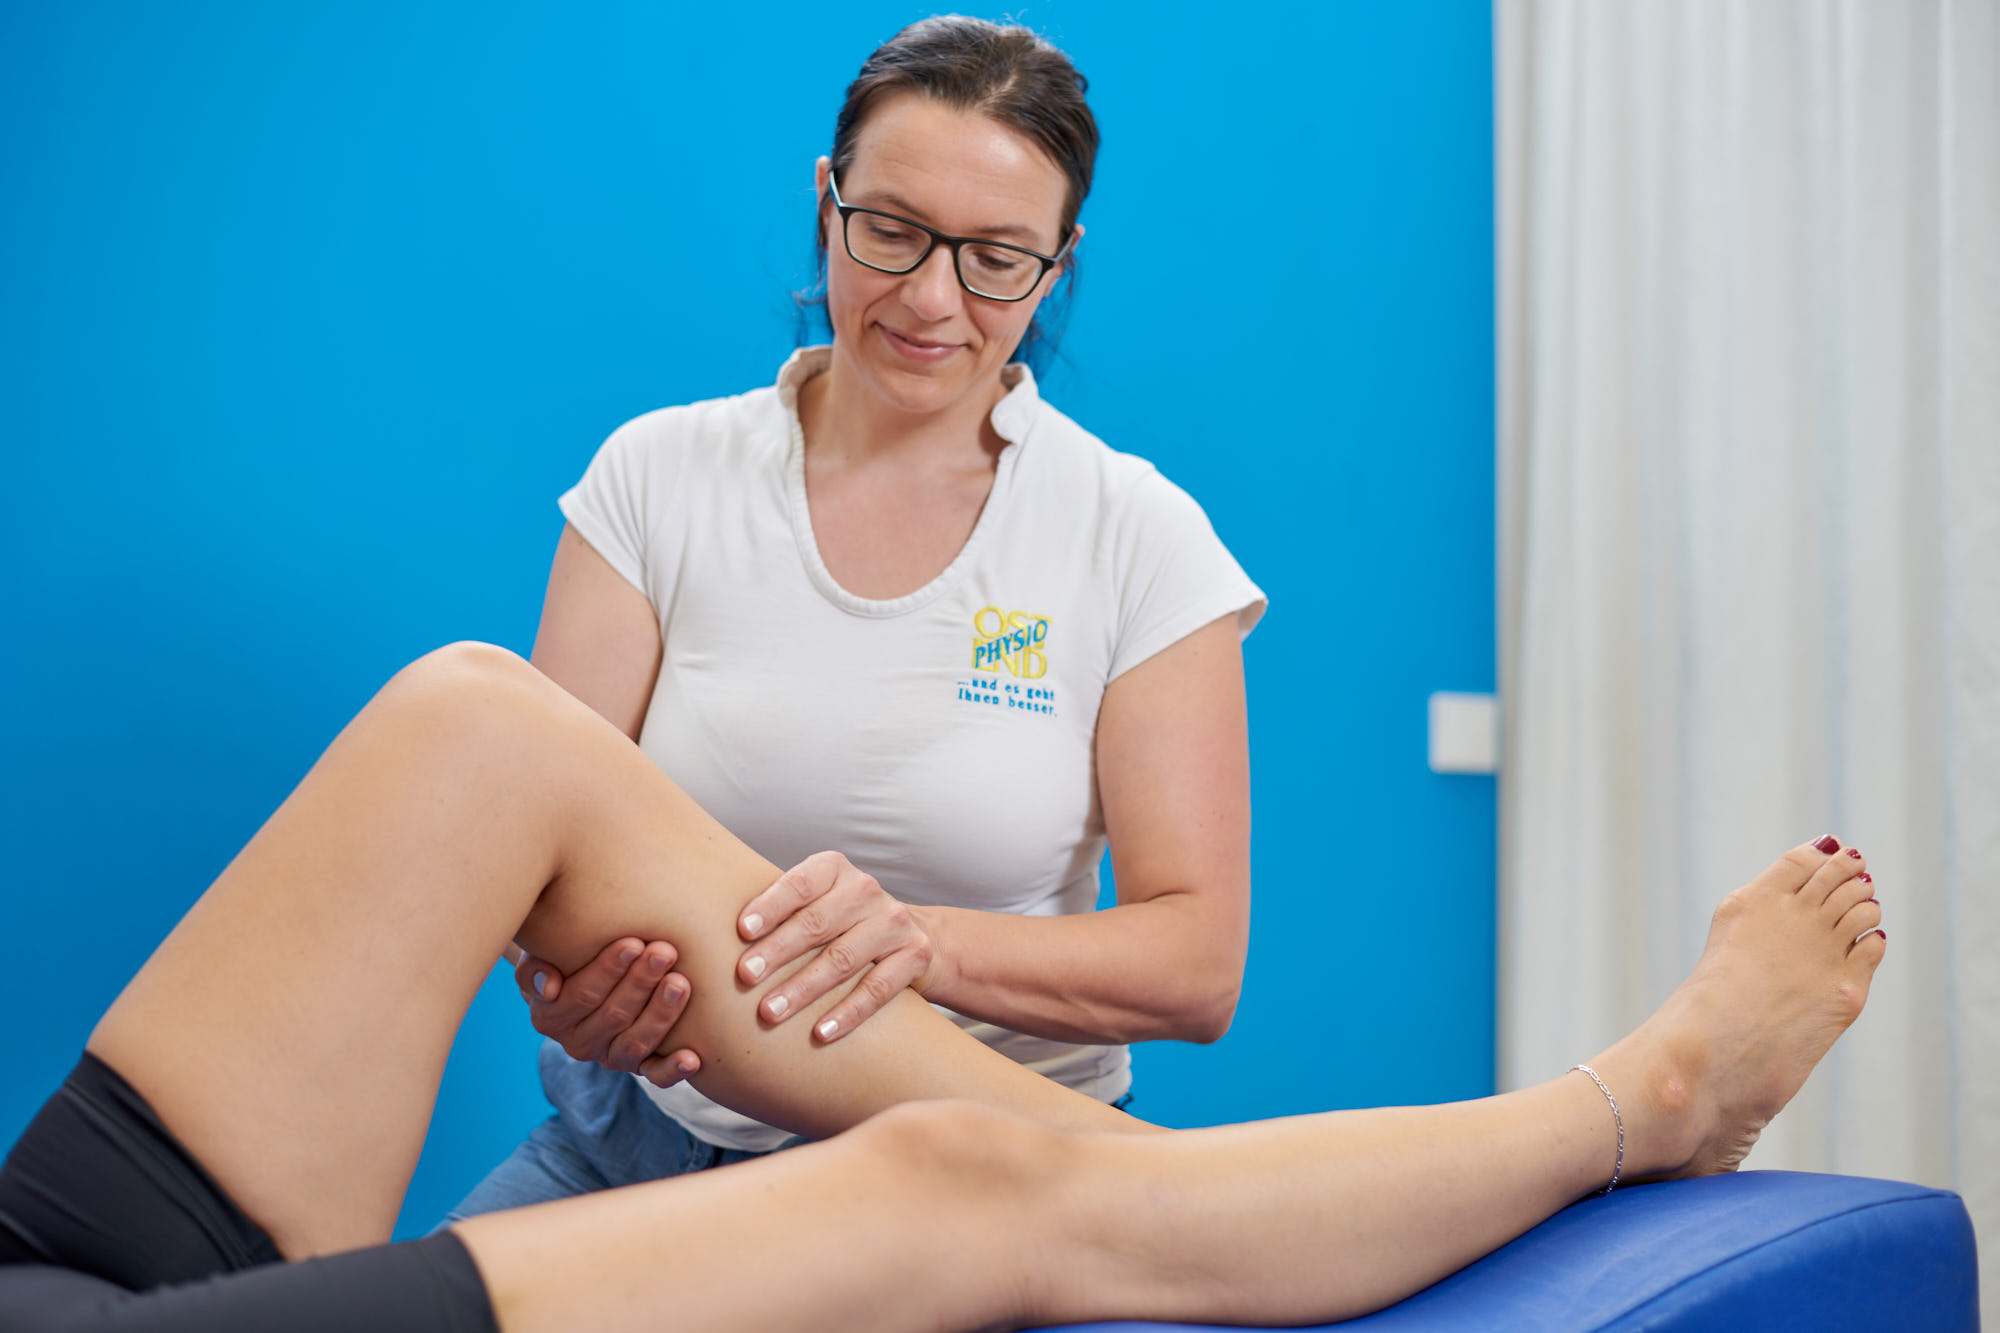 OSTEND-PHYSIO: Lymphdrainage